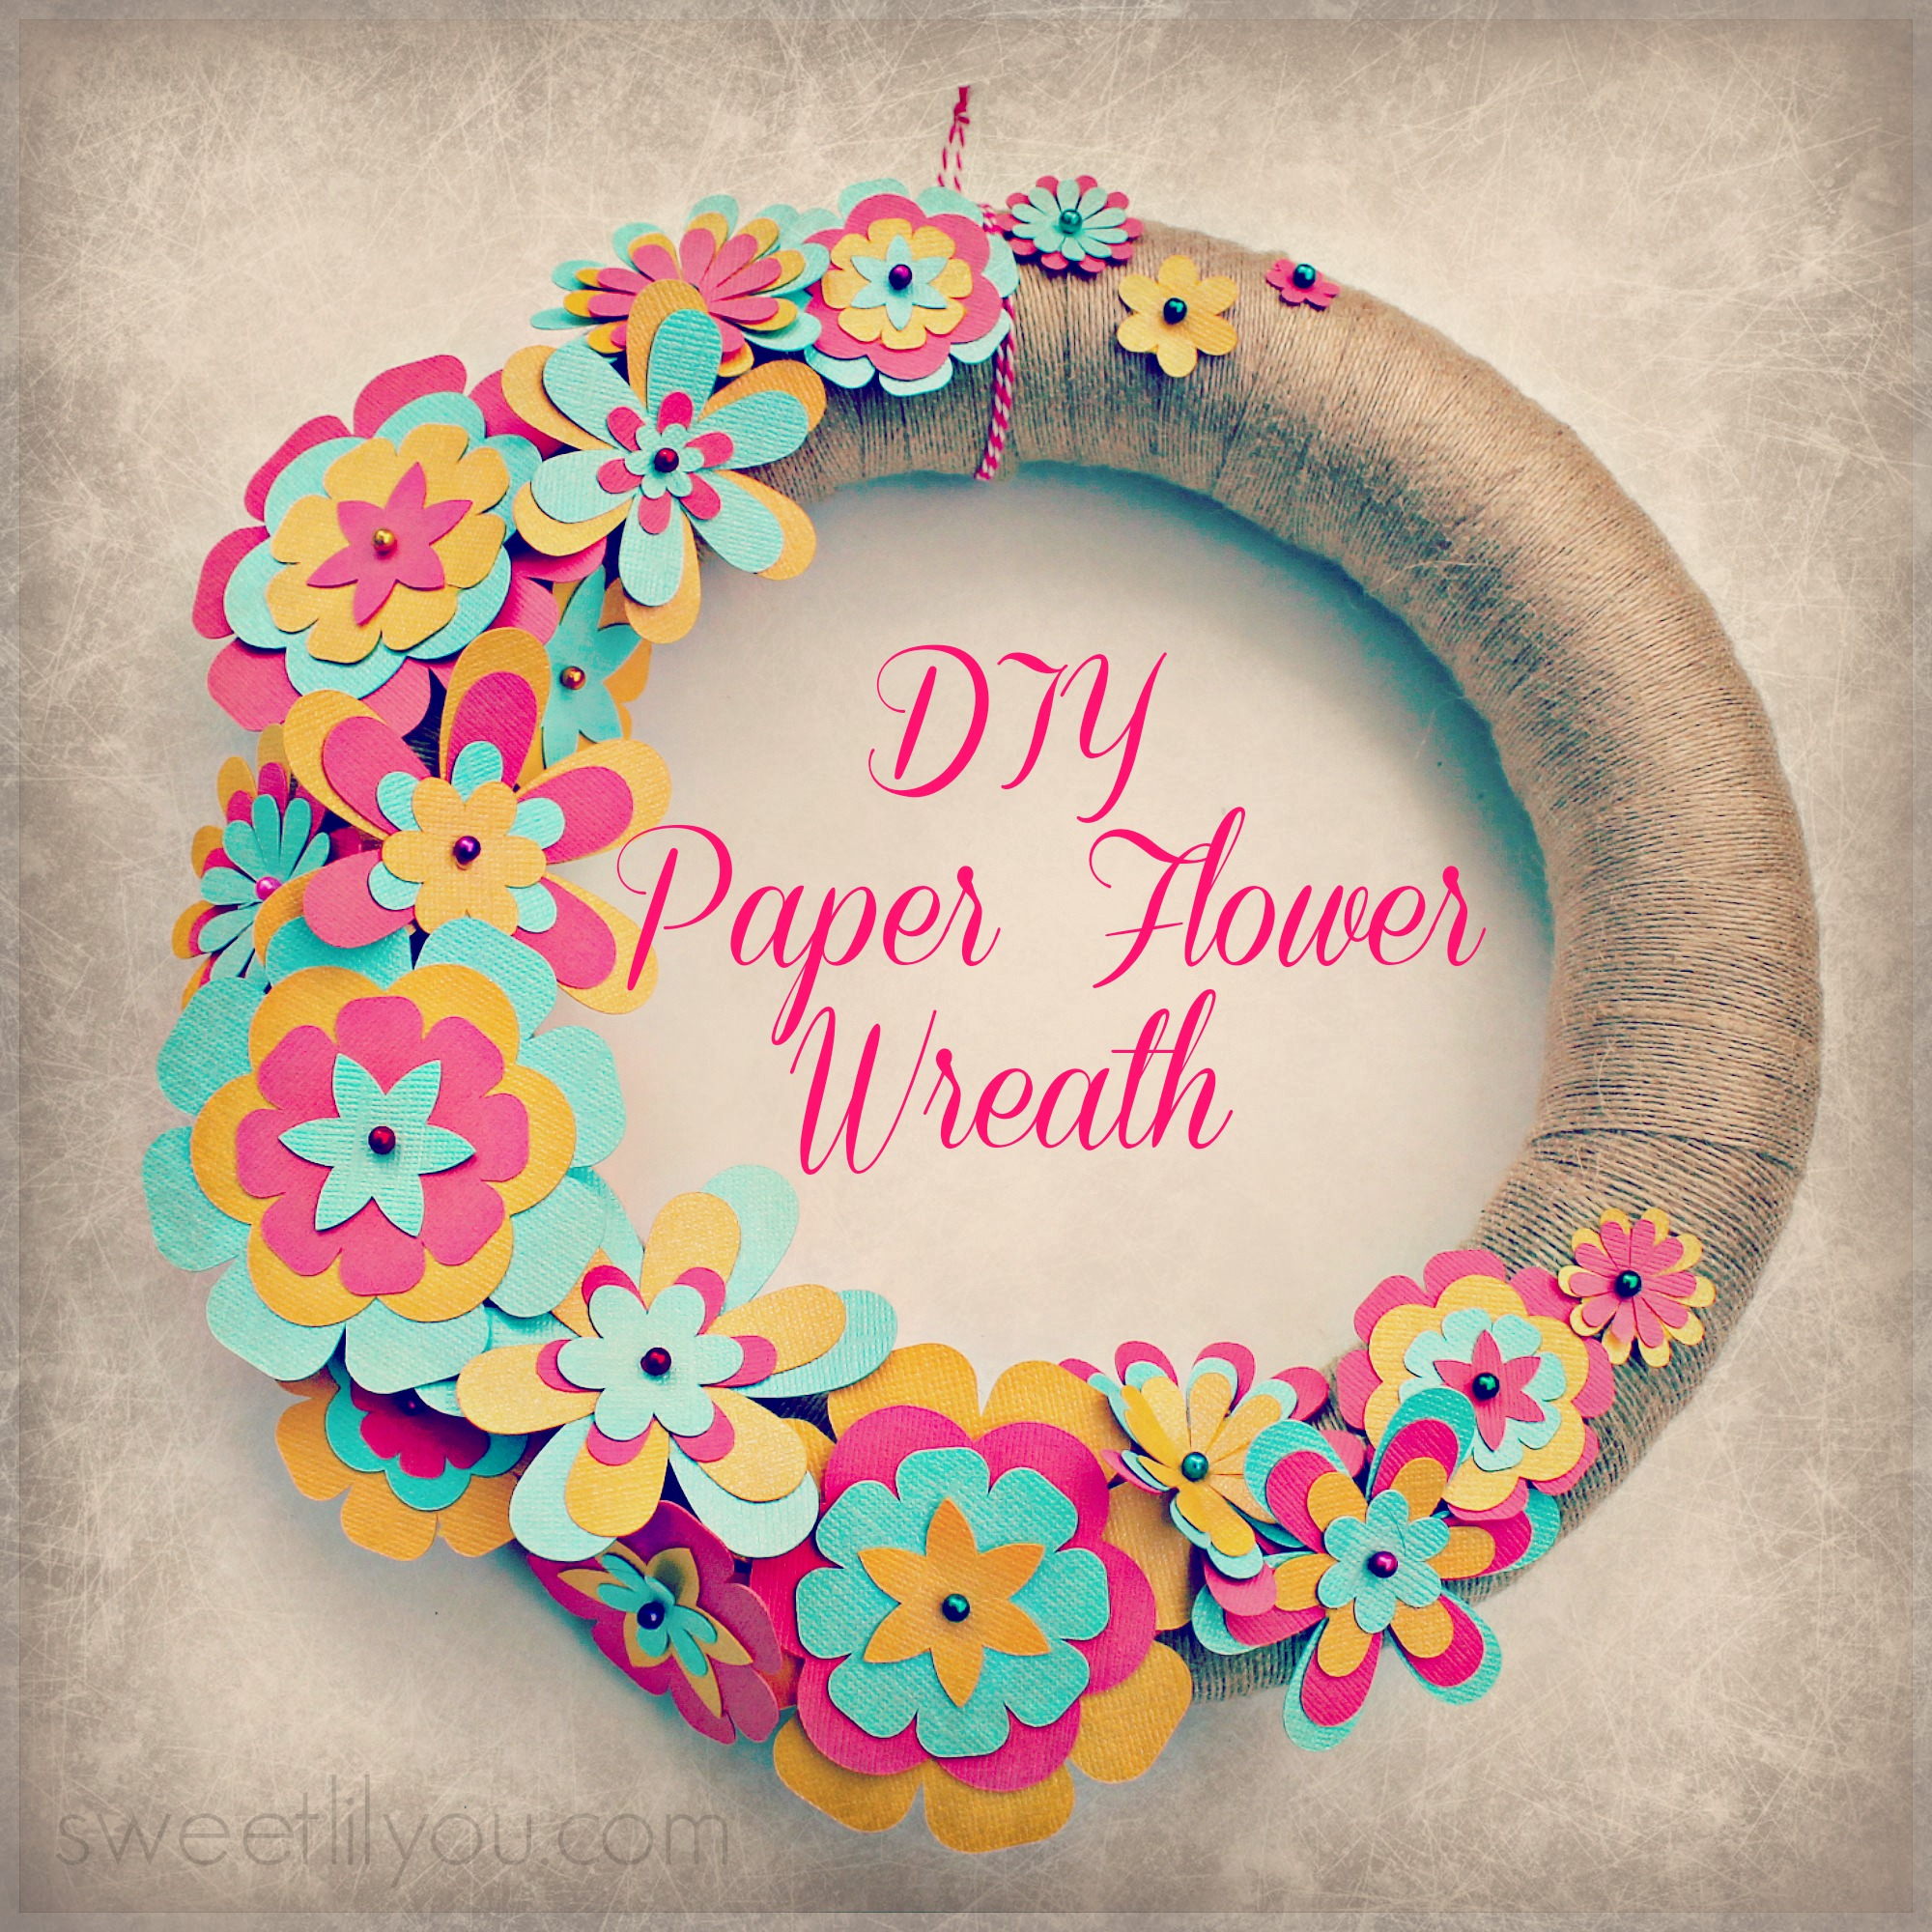 Easy diy paper flower wreath sweet lil you for Easy diy home decorations